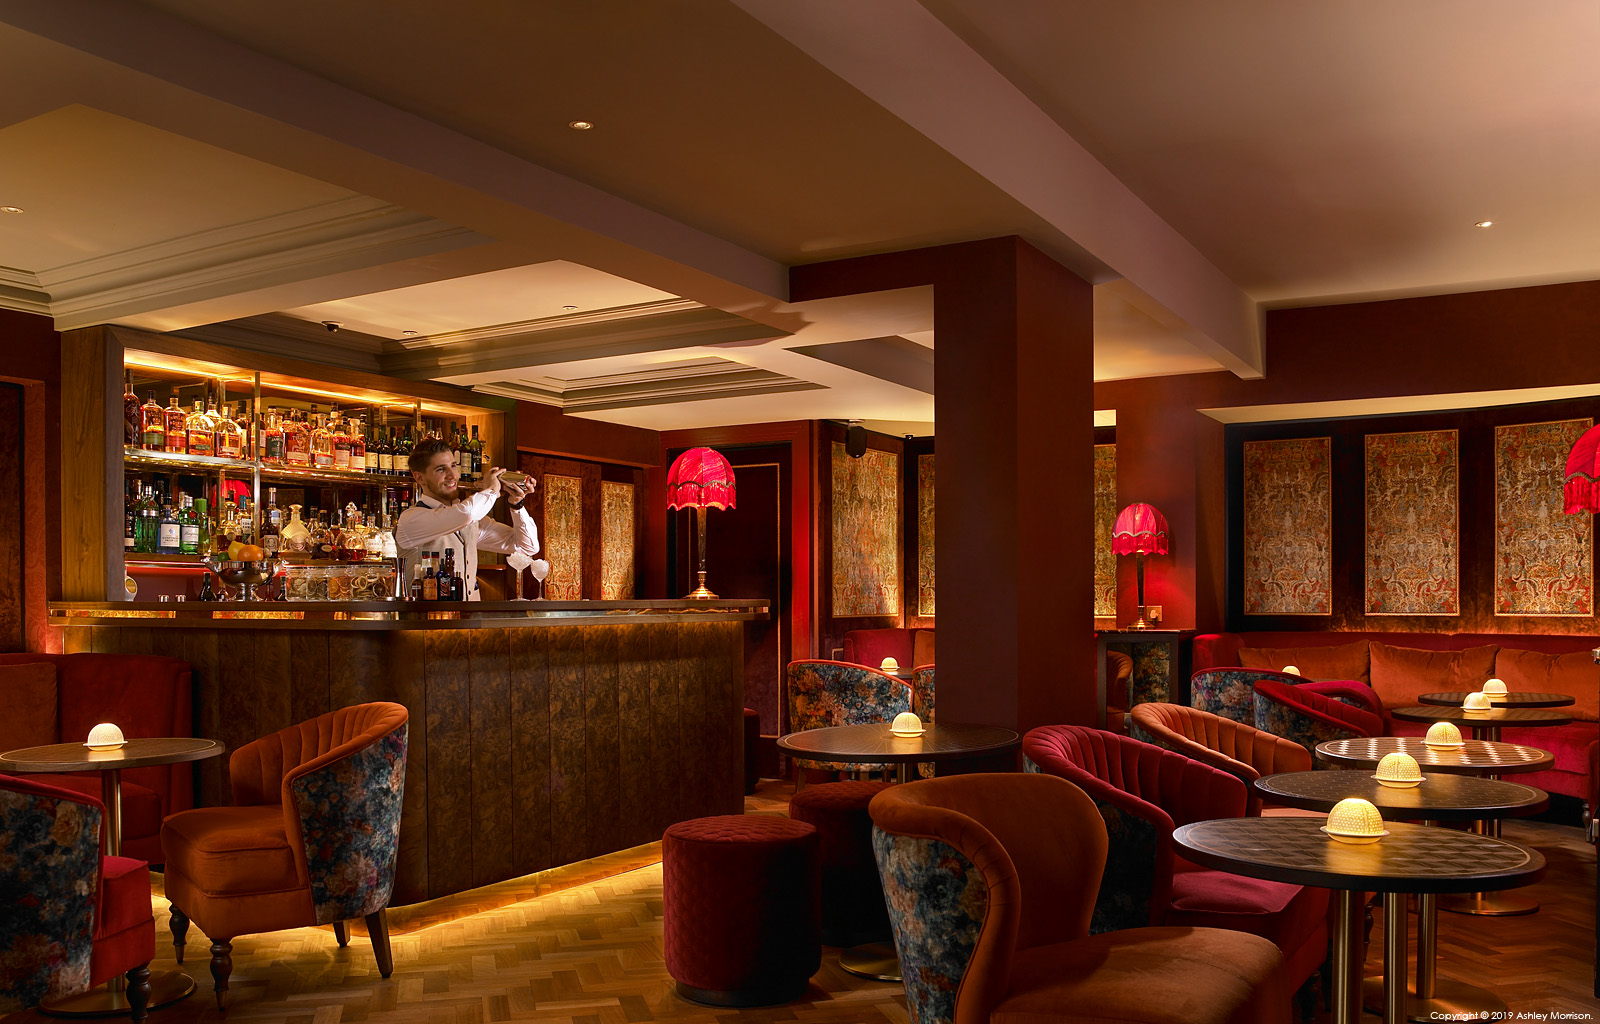 The Ruby Room Bar in the Dylan Hotel which is Dublin's leading five star boutique hotel.